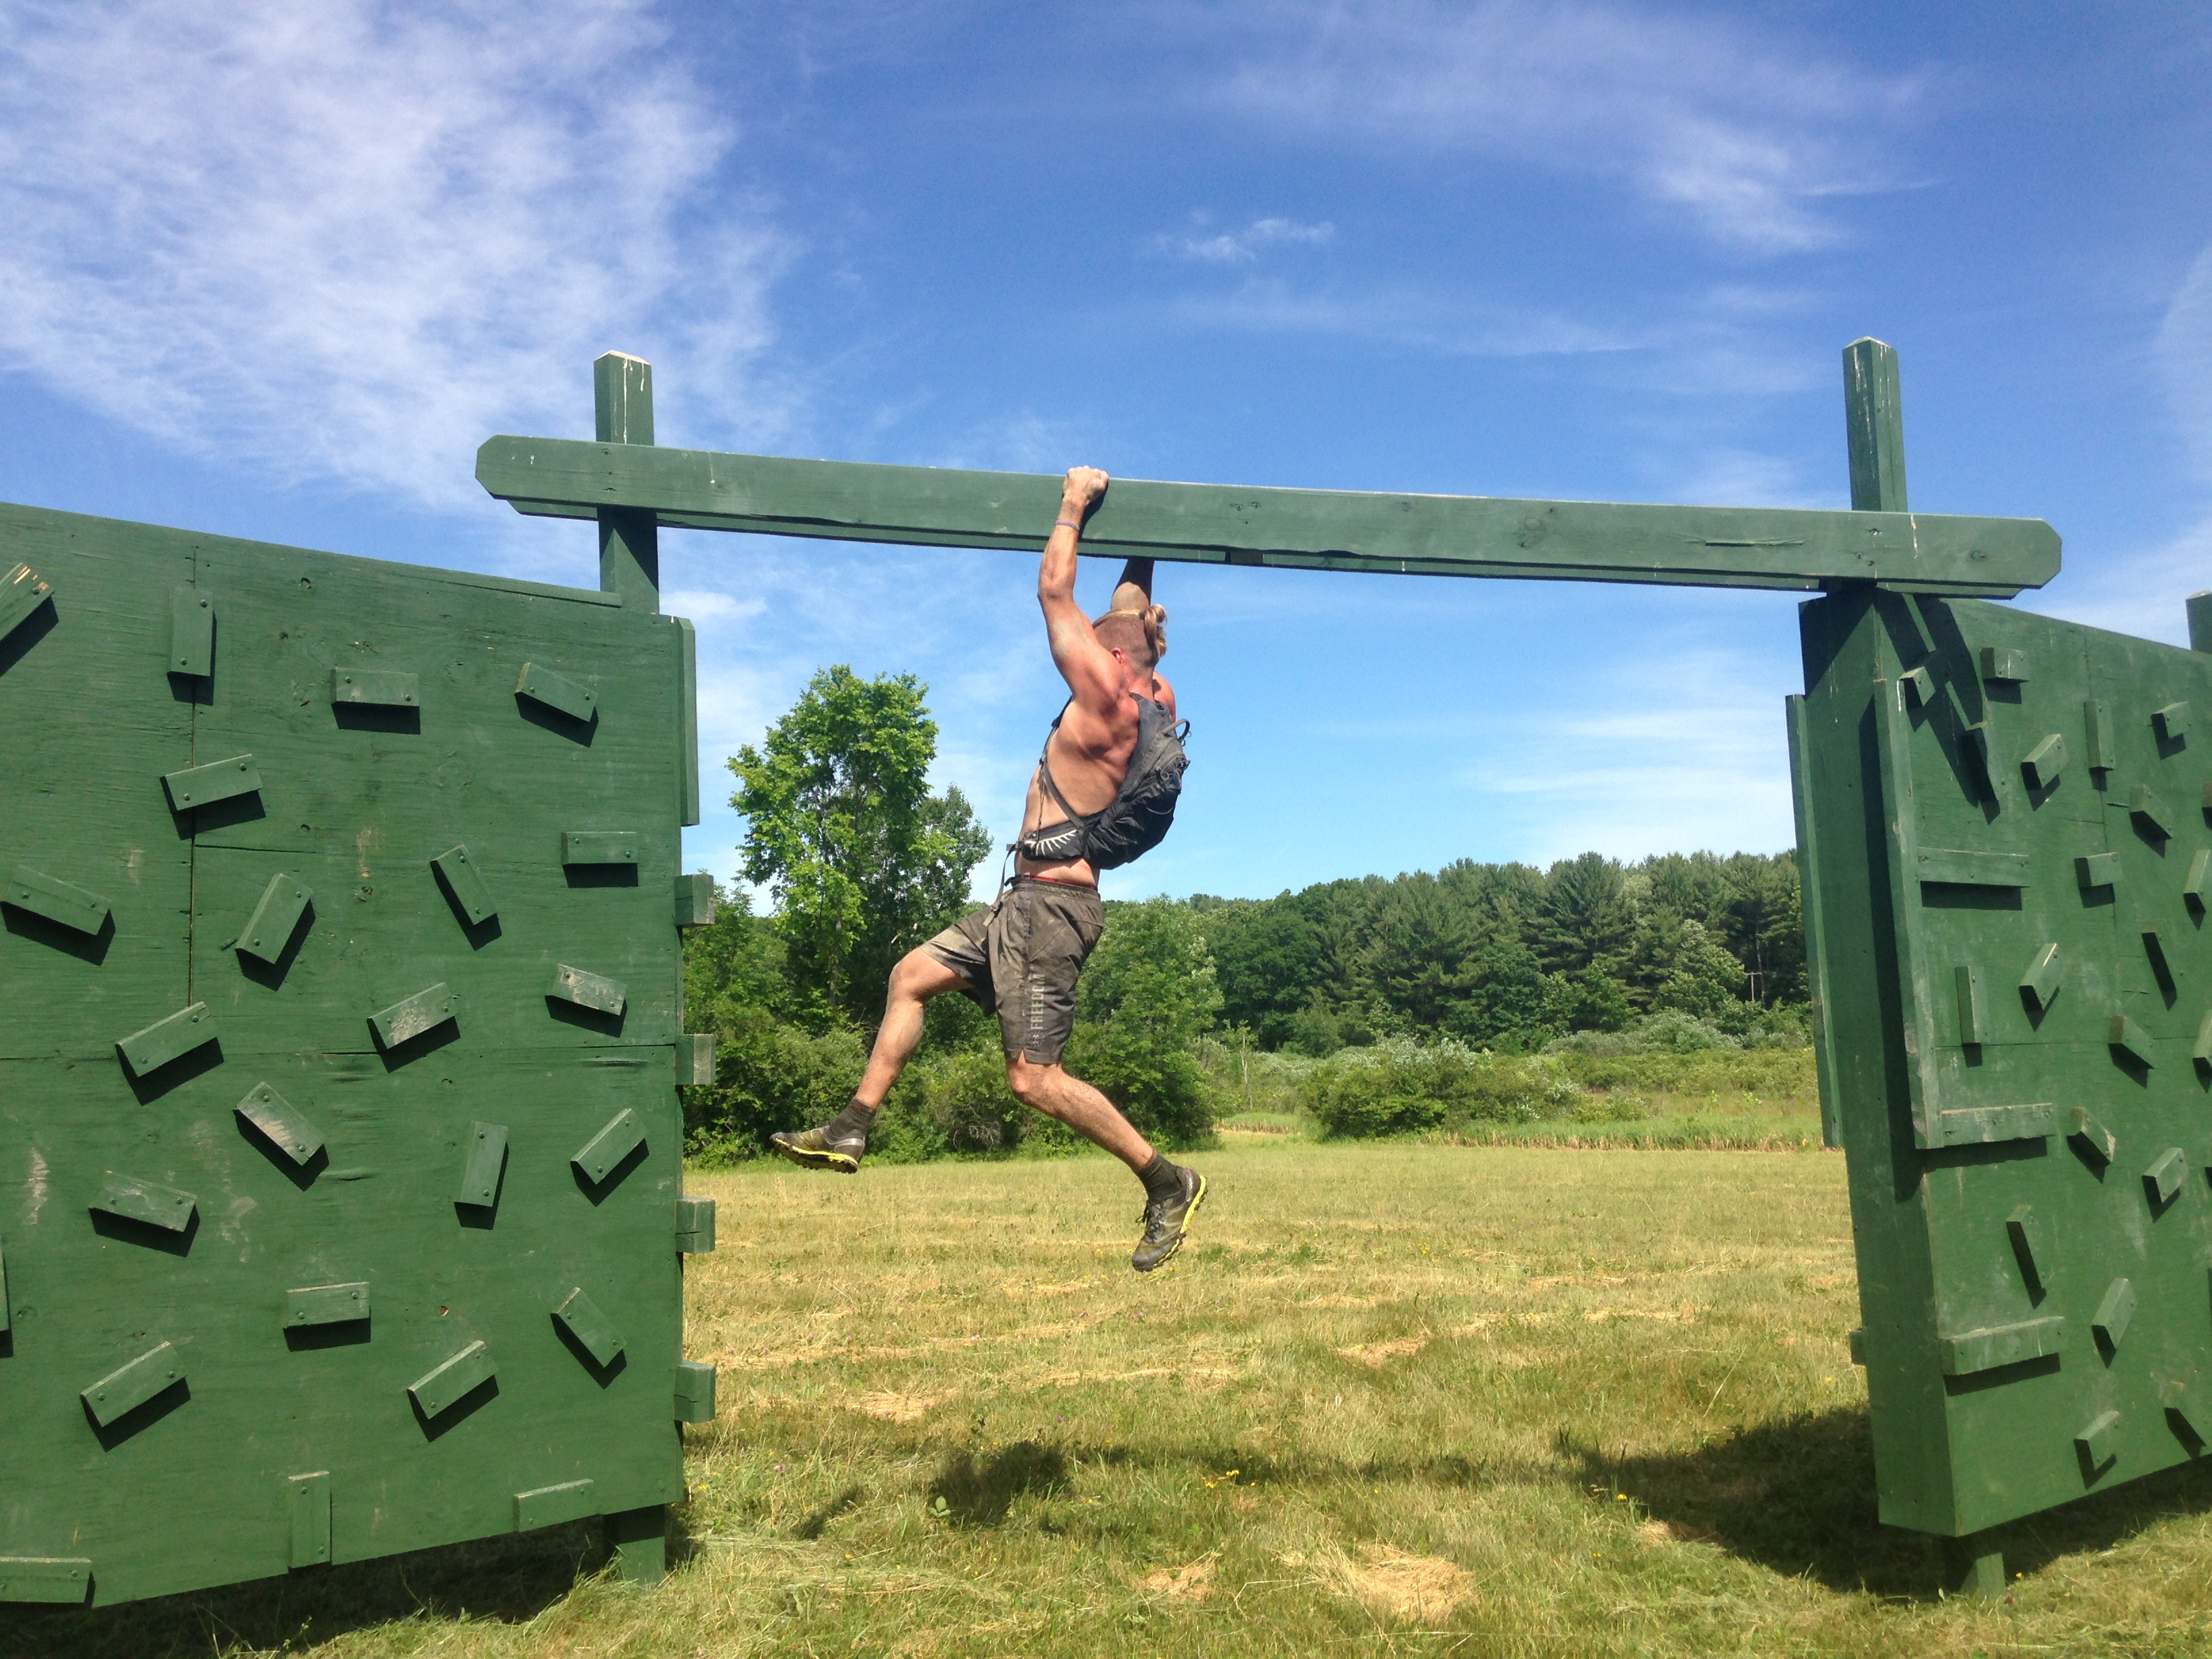 Neil Cary completing on his laps at Viking OCR. He would complete 36 miles over two days.